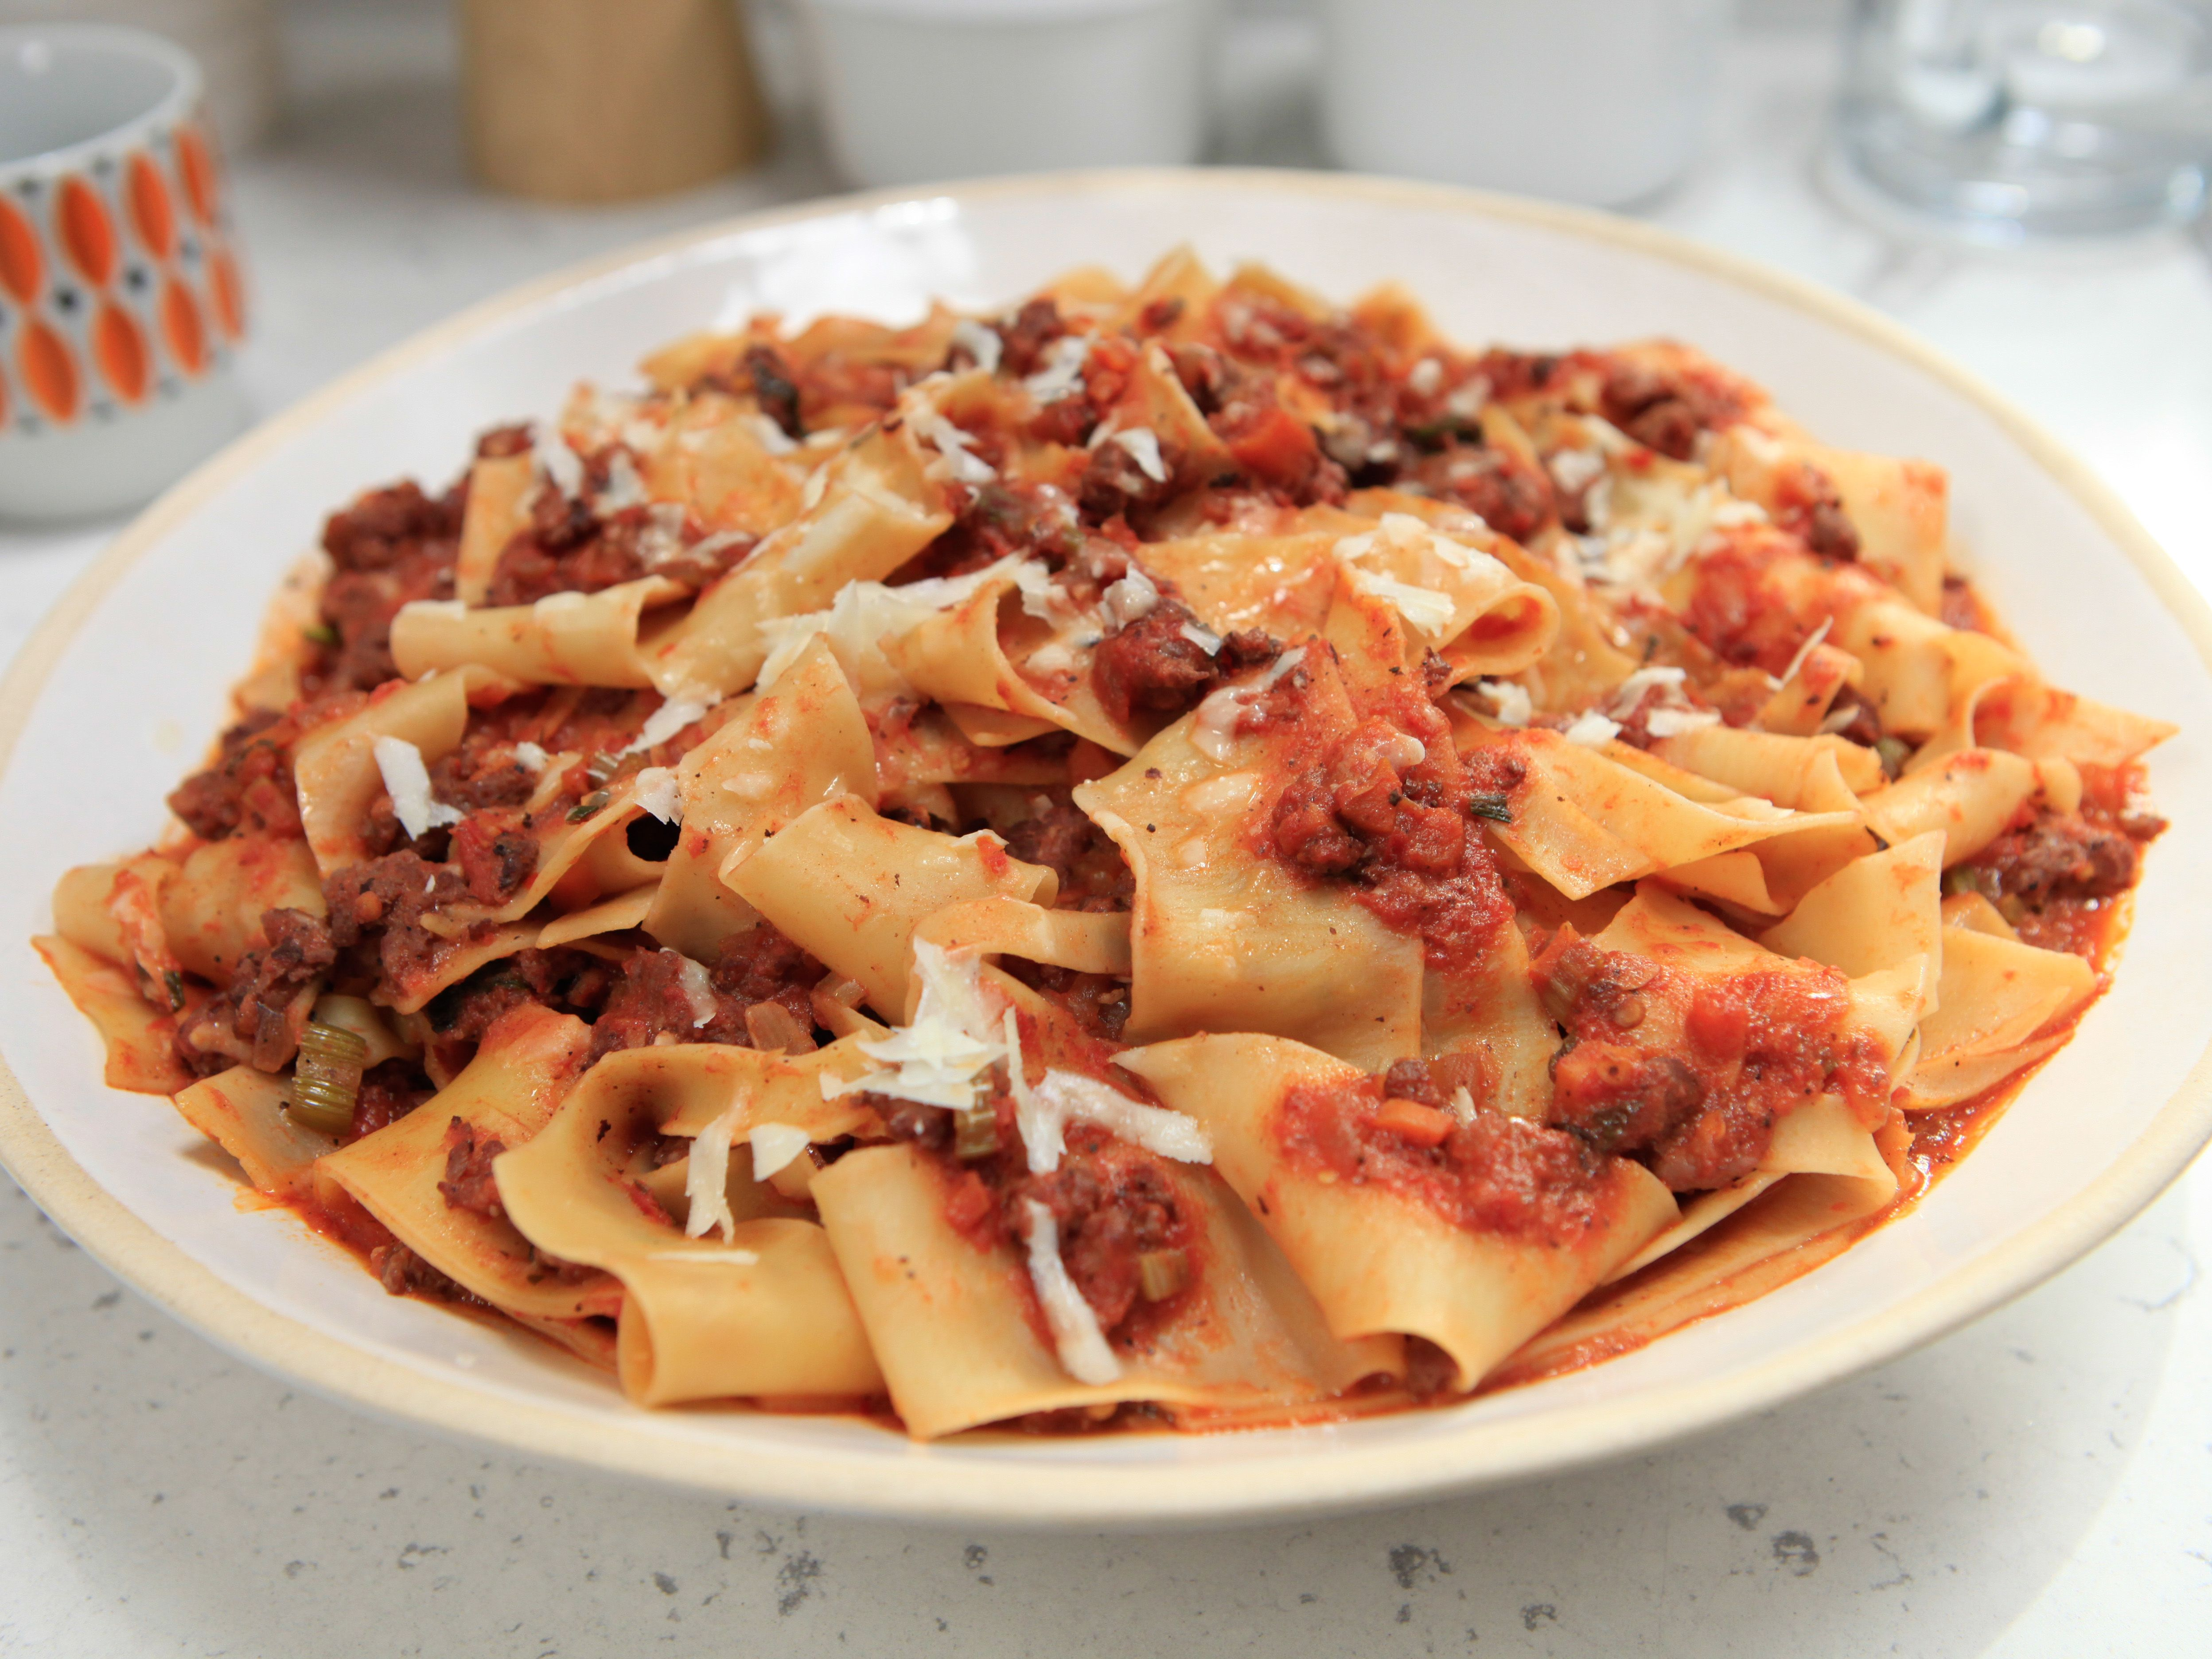 Spicy sausage bolognese with pappardelle receta forumfinder Choice Image